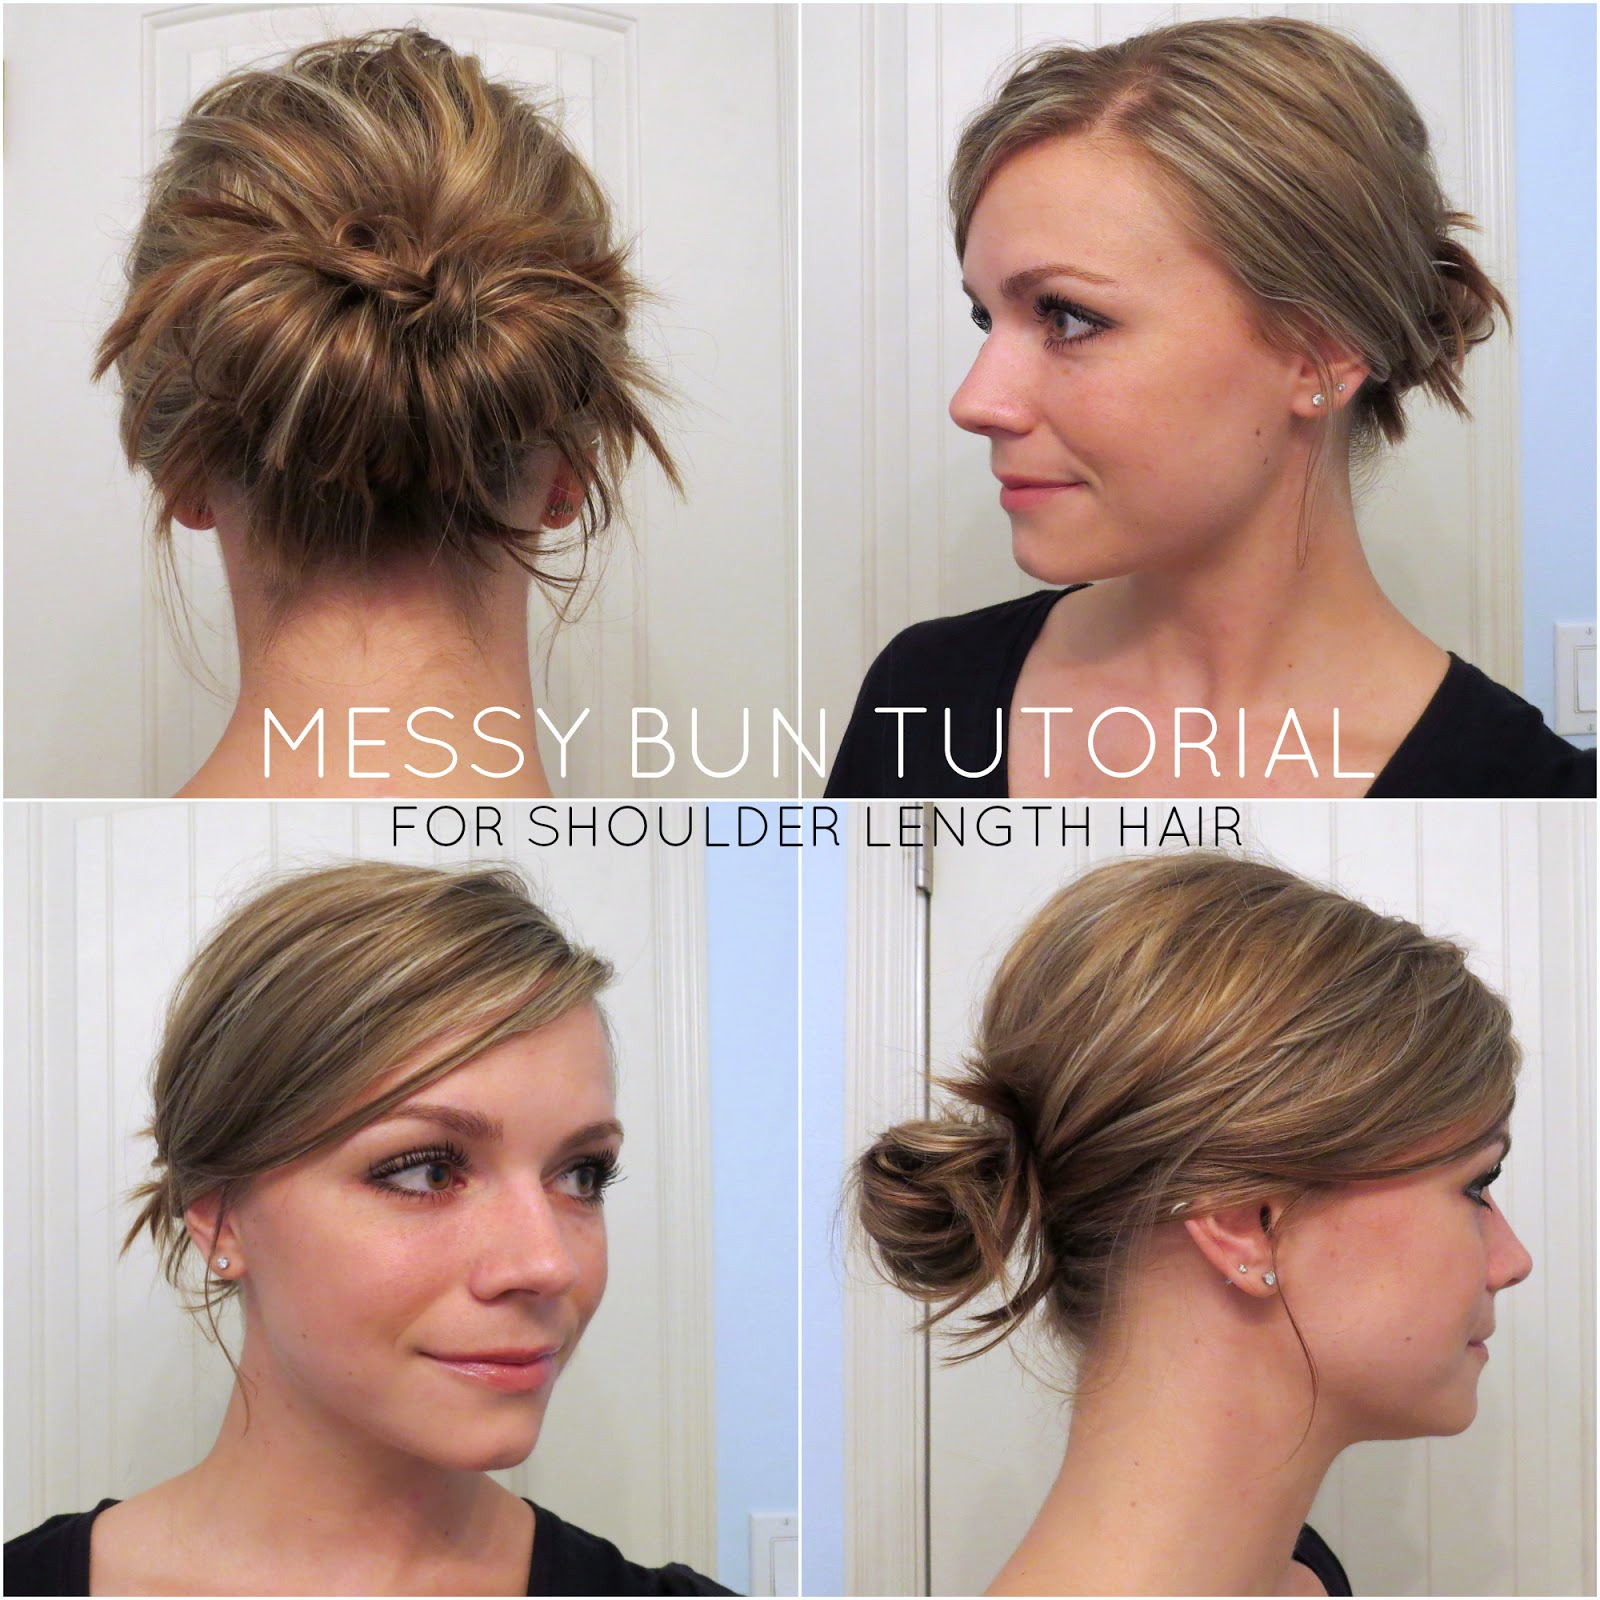 bye bye beehive │ a hairstyle blog: messy bun for shoulder length hair